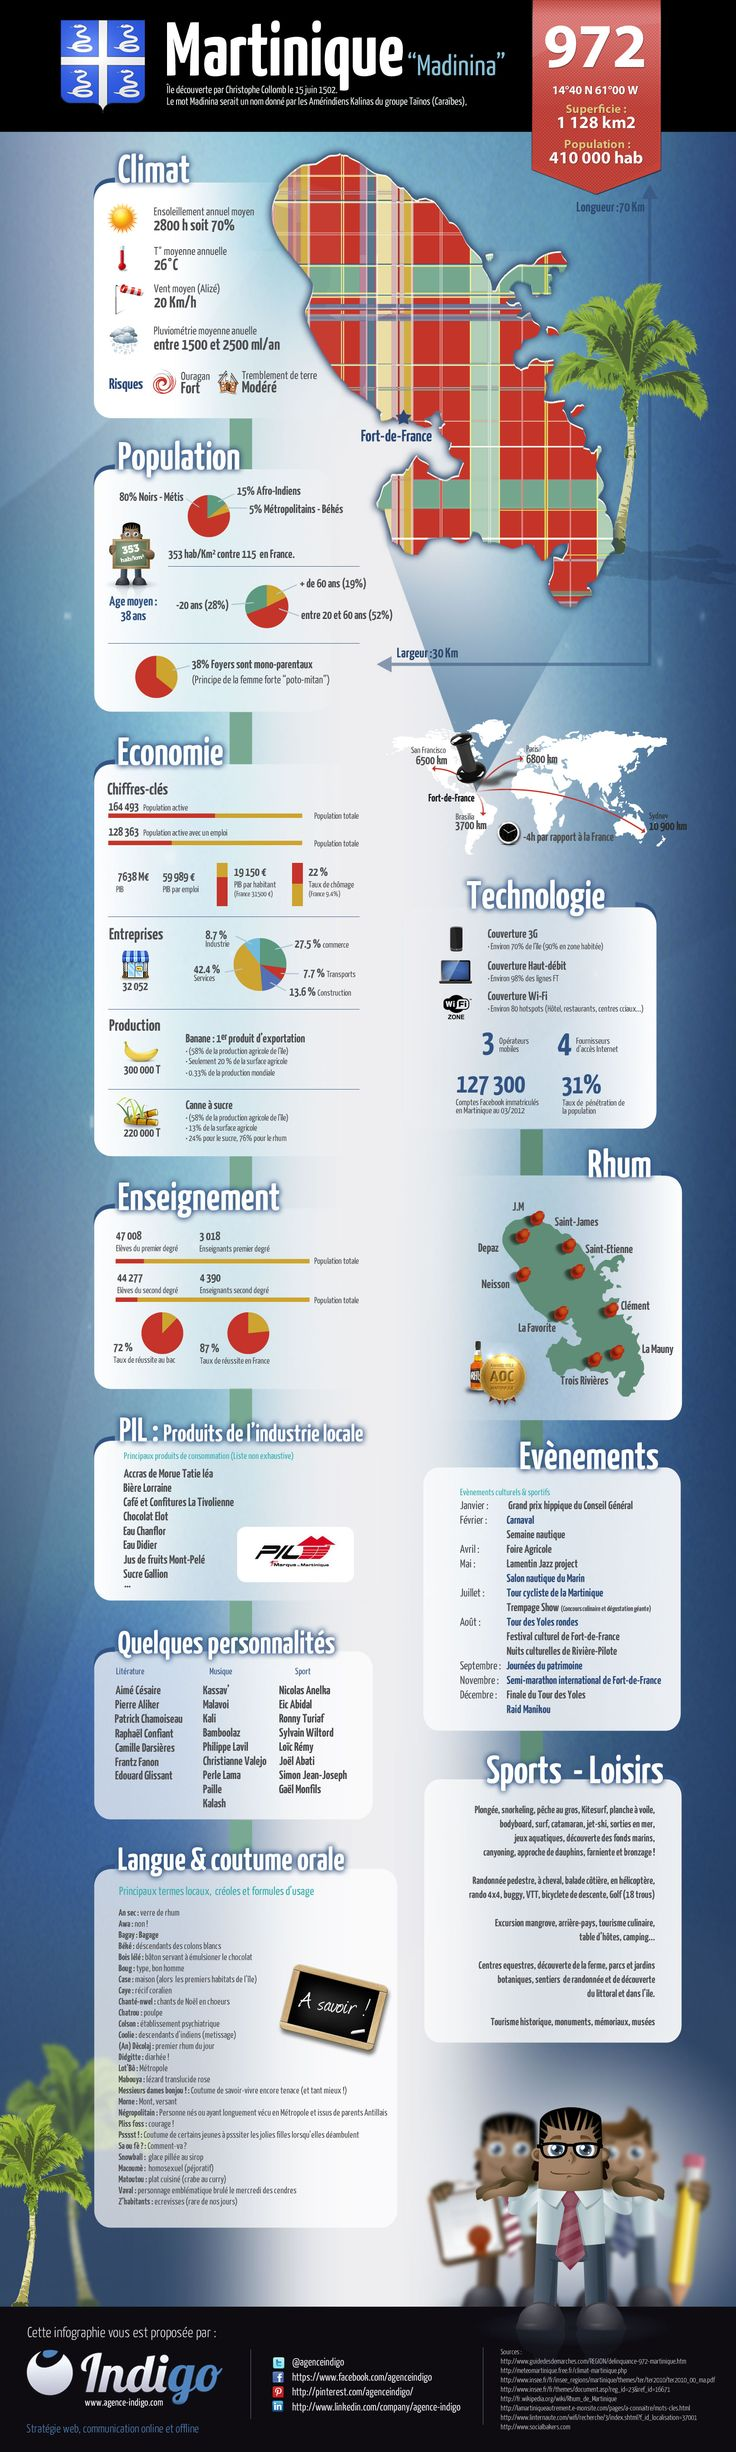 infographie Martinique: Information about French speaking countries and territories. #paysfrancophones #Martinique